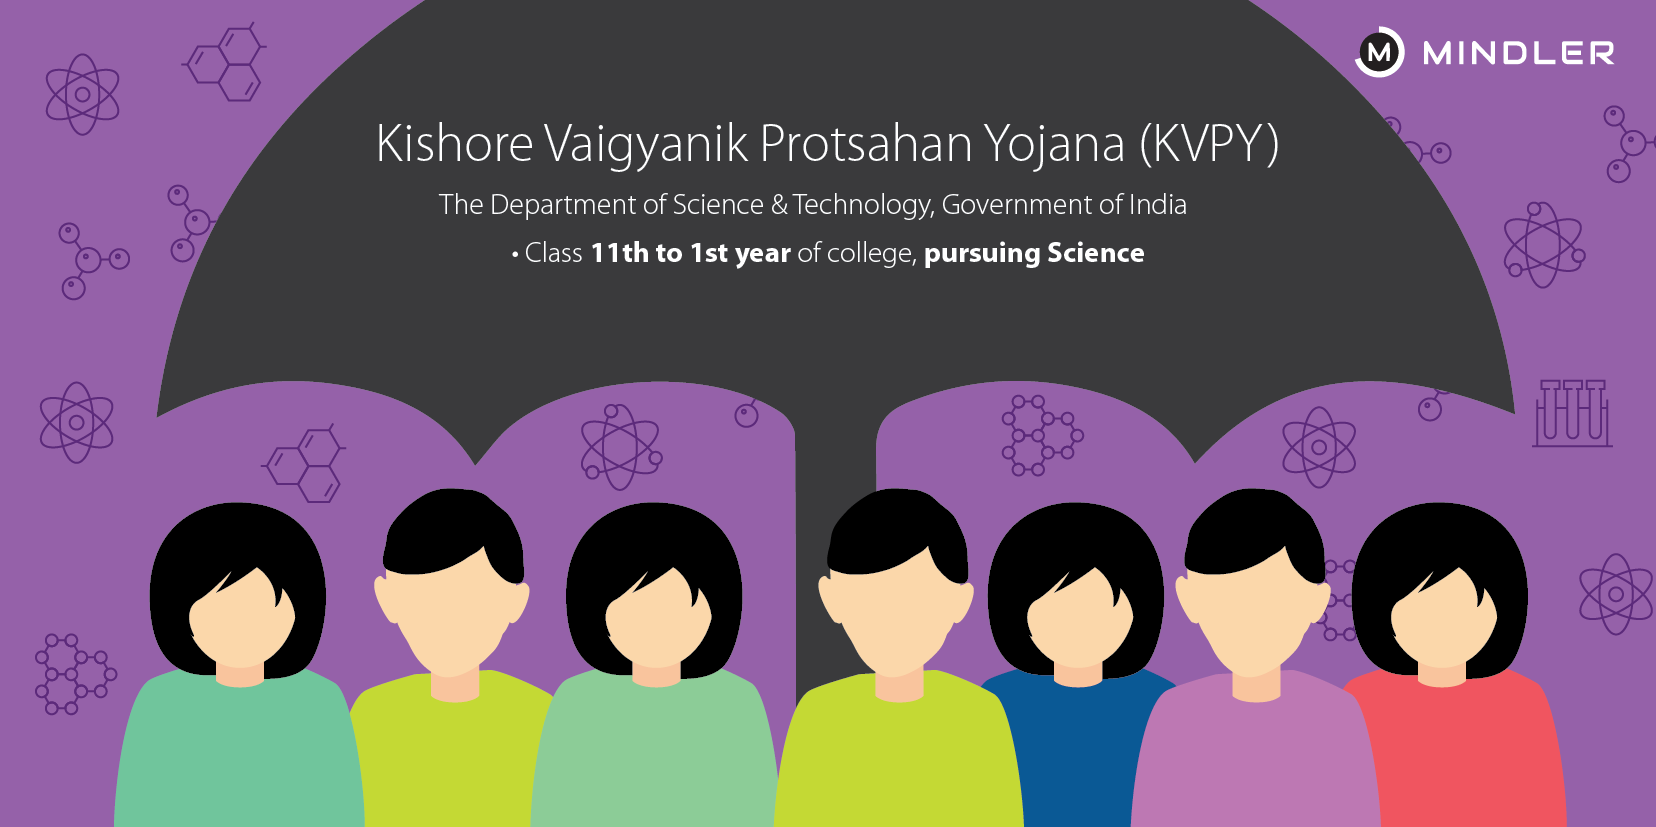 Top 7 popular scholarships for indian students mindler kvpy scholarship thecheapjerseys Choice Image